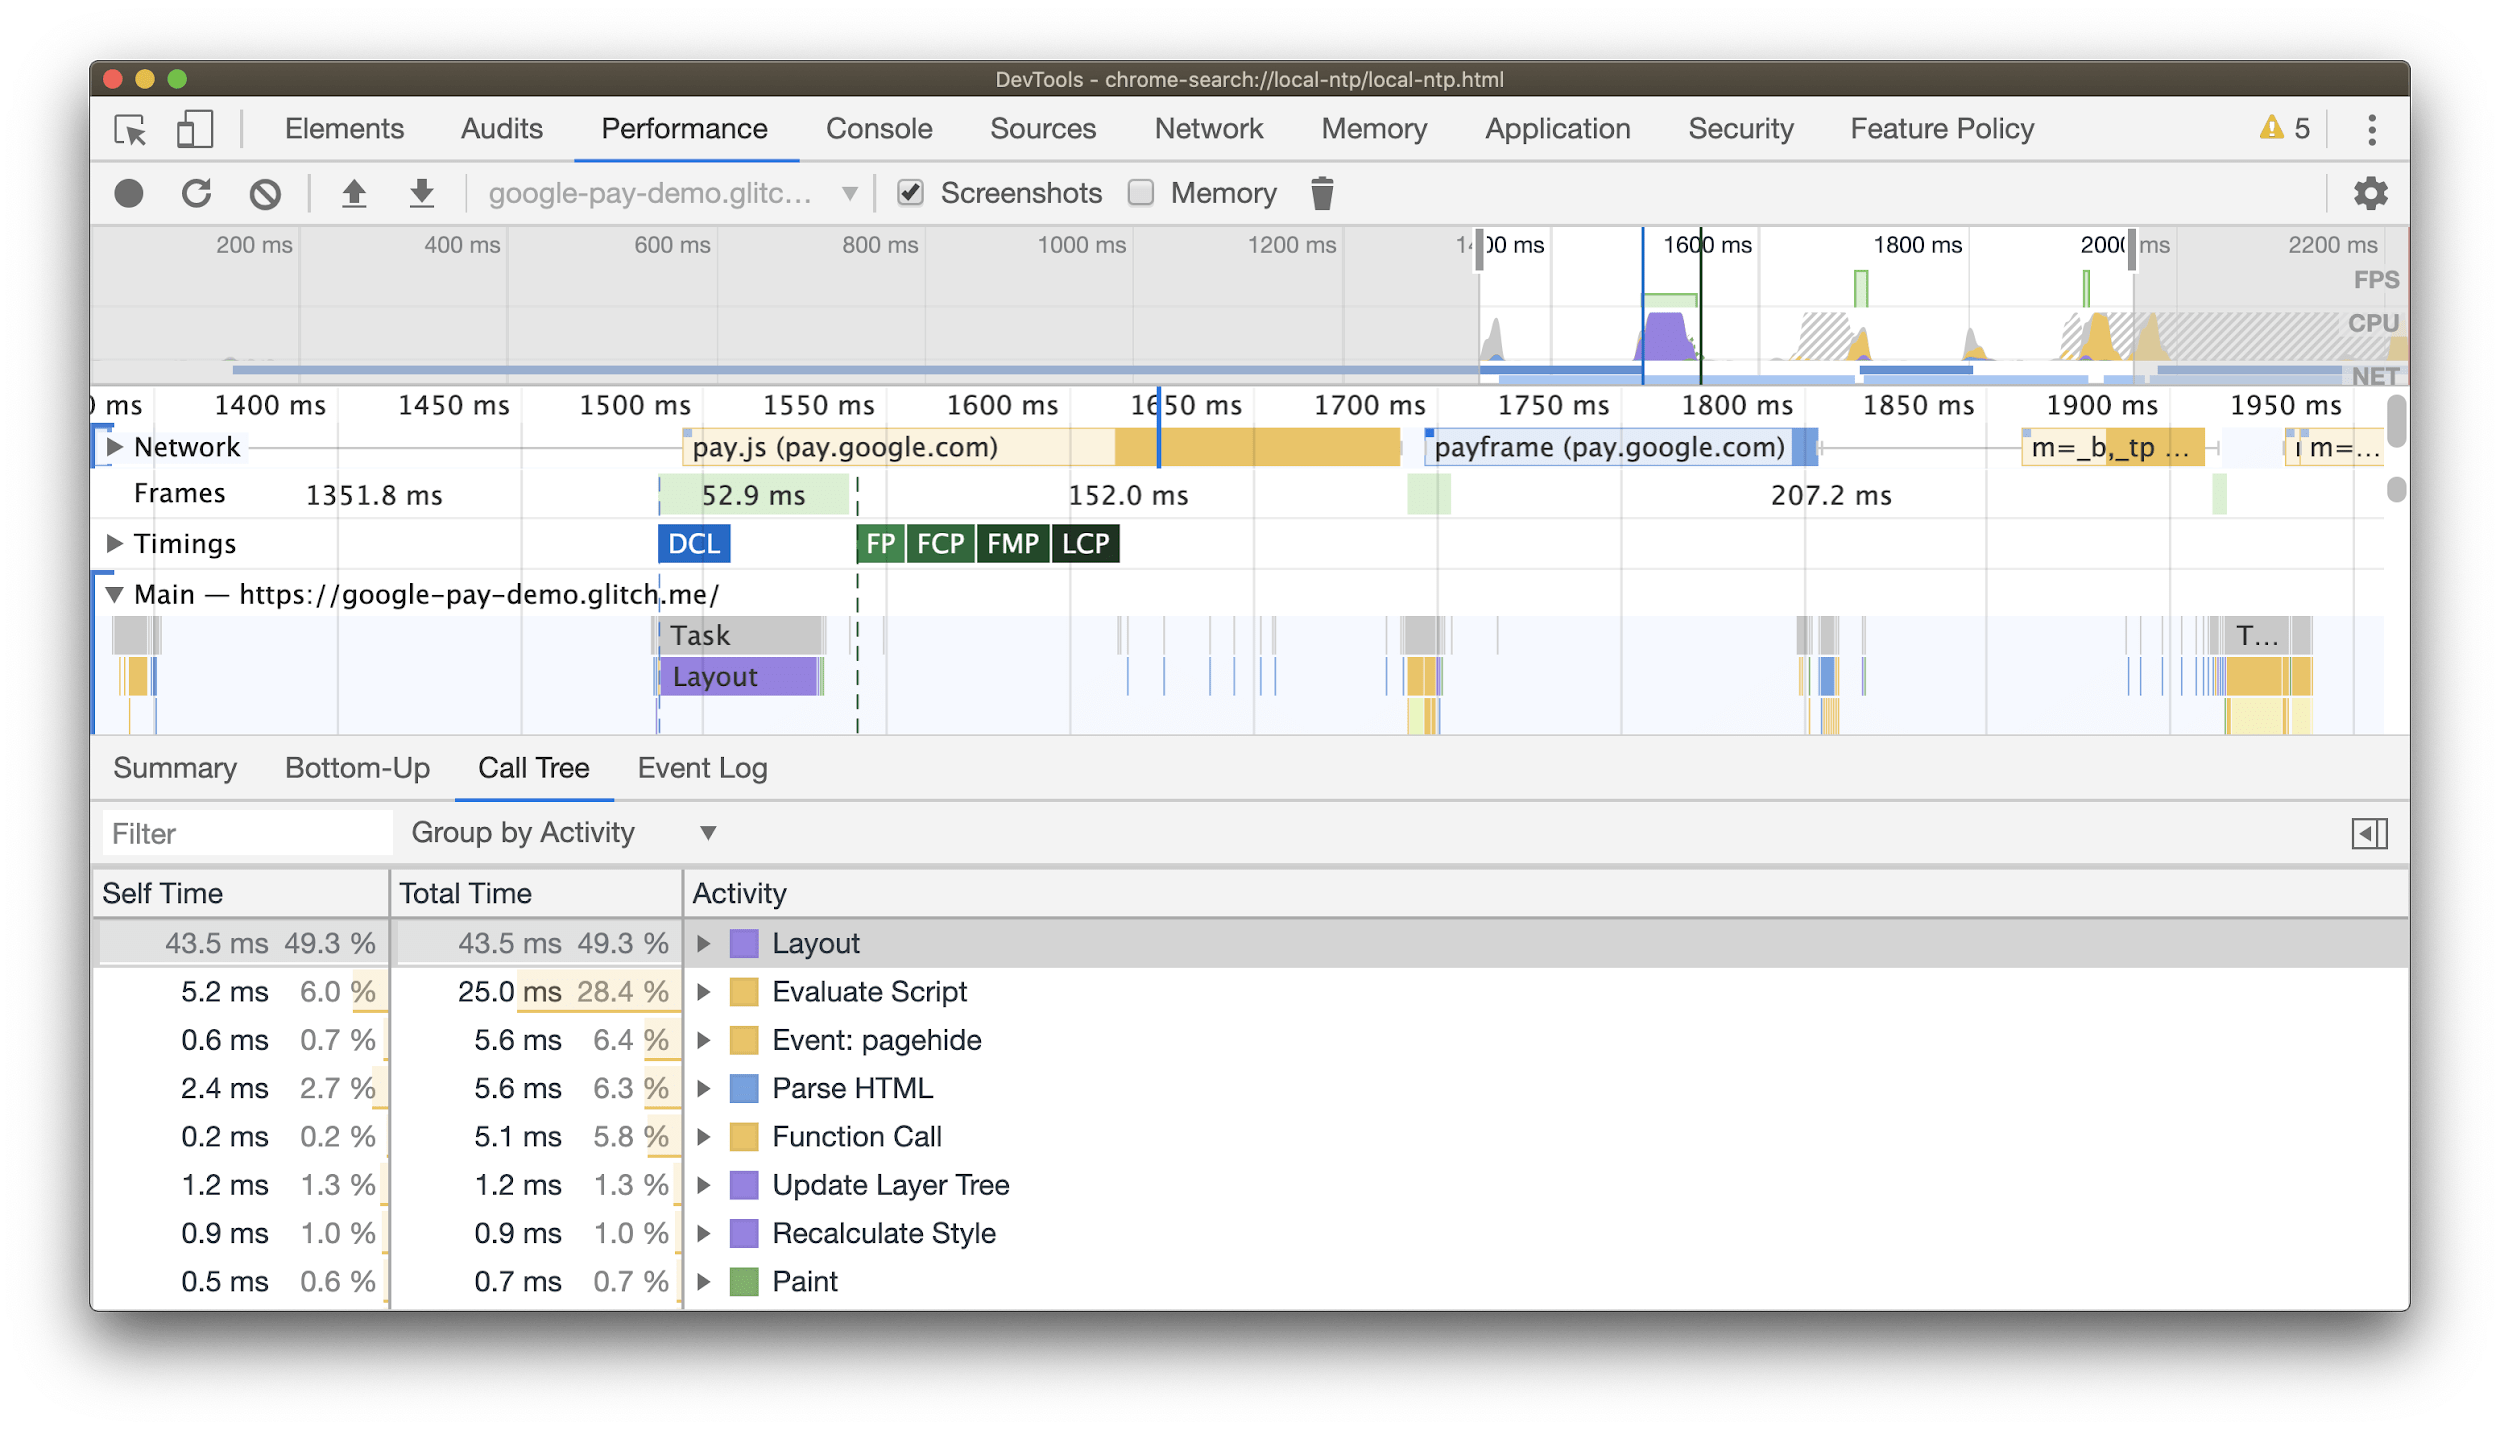 Screenshot of a DevTools performance profile from loading and rendering a page